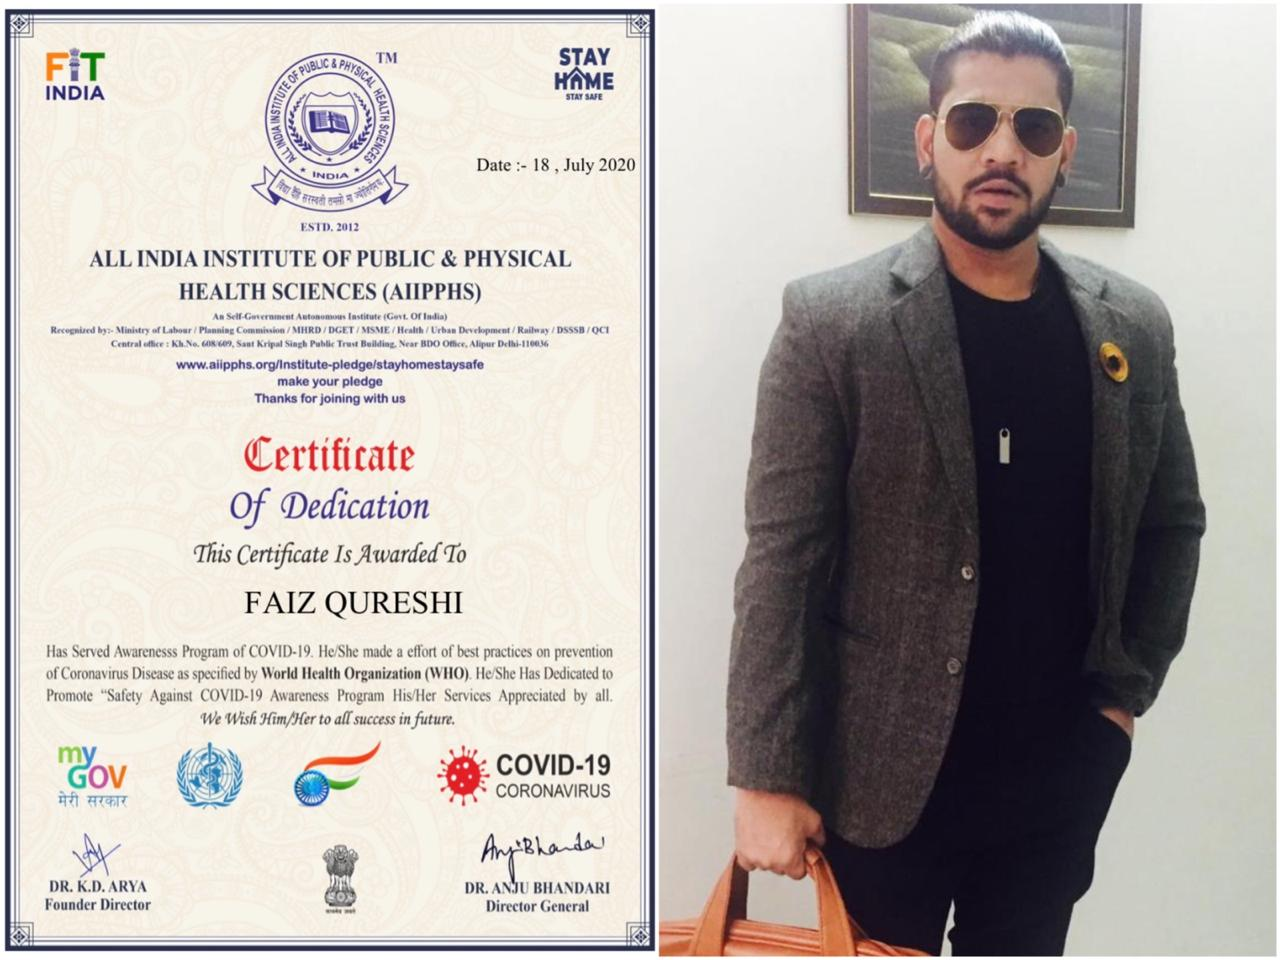 REDDWINGS PRODUCTION'S OWNER – FAIZ QURESHI – AWARDED FOR HIS SERVICE